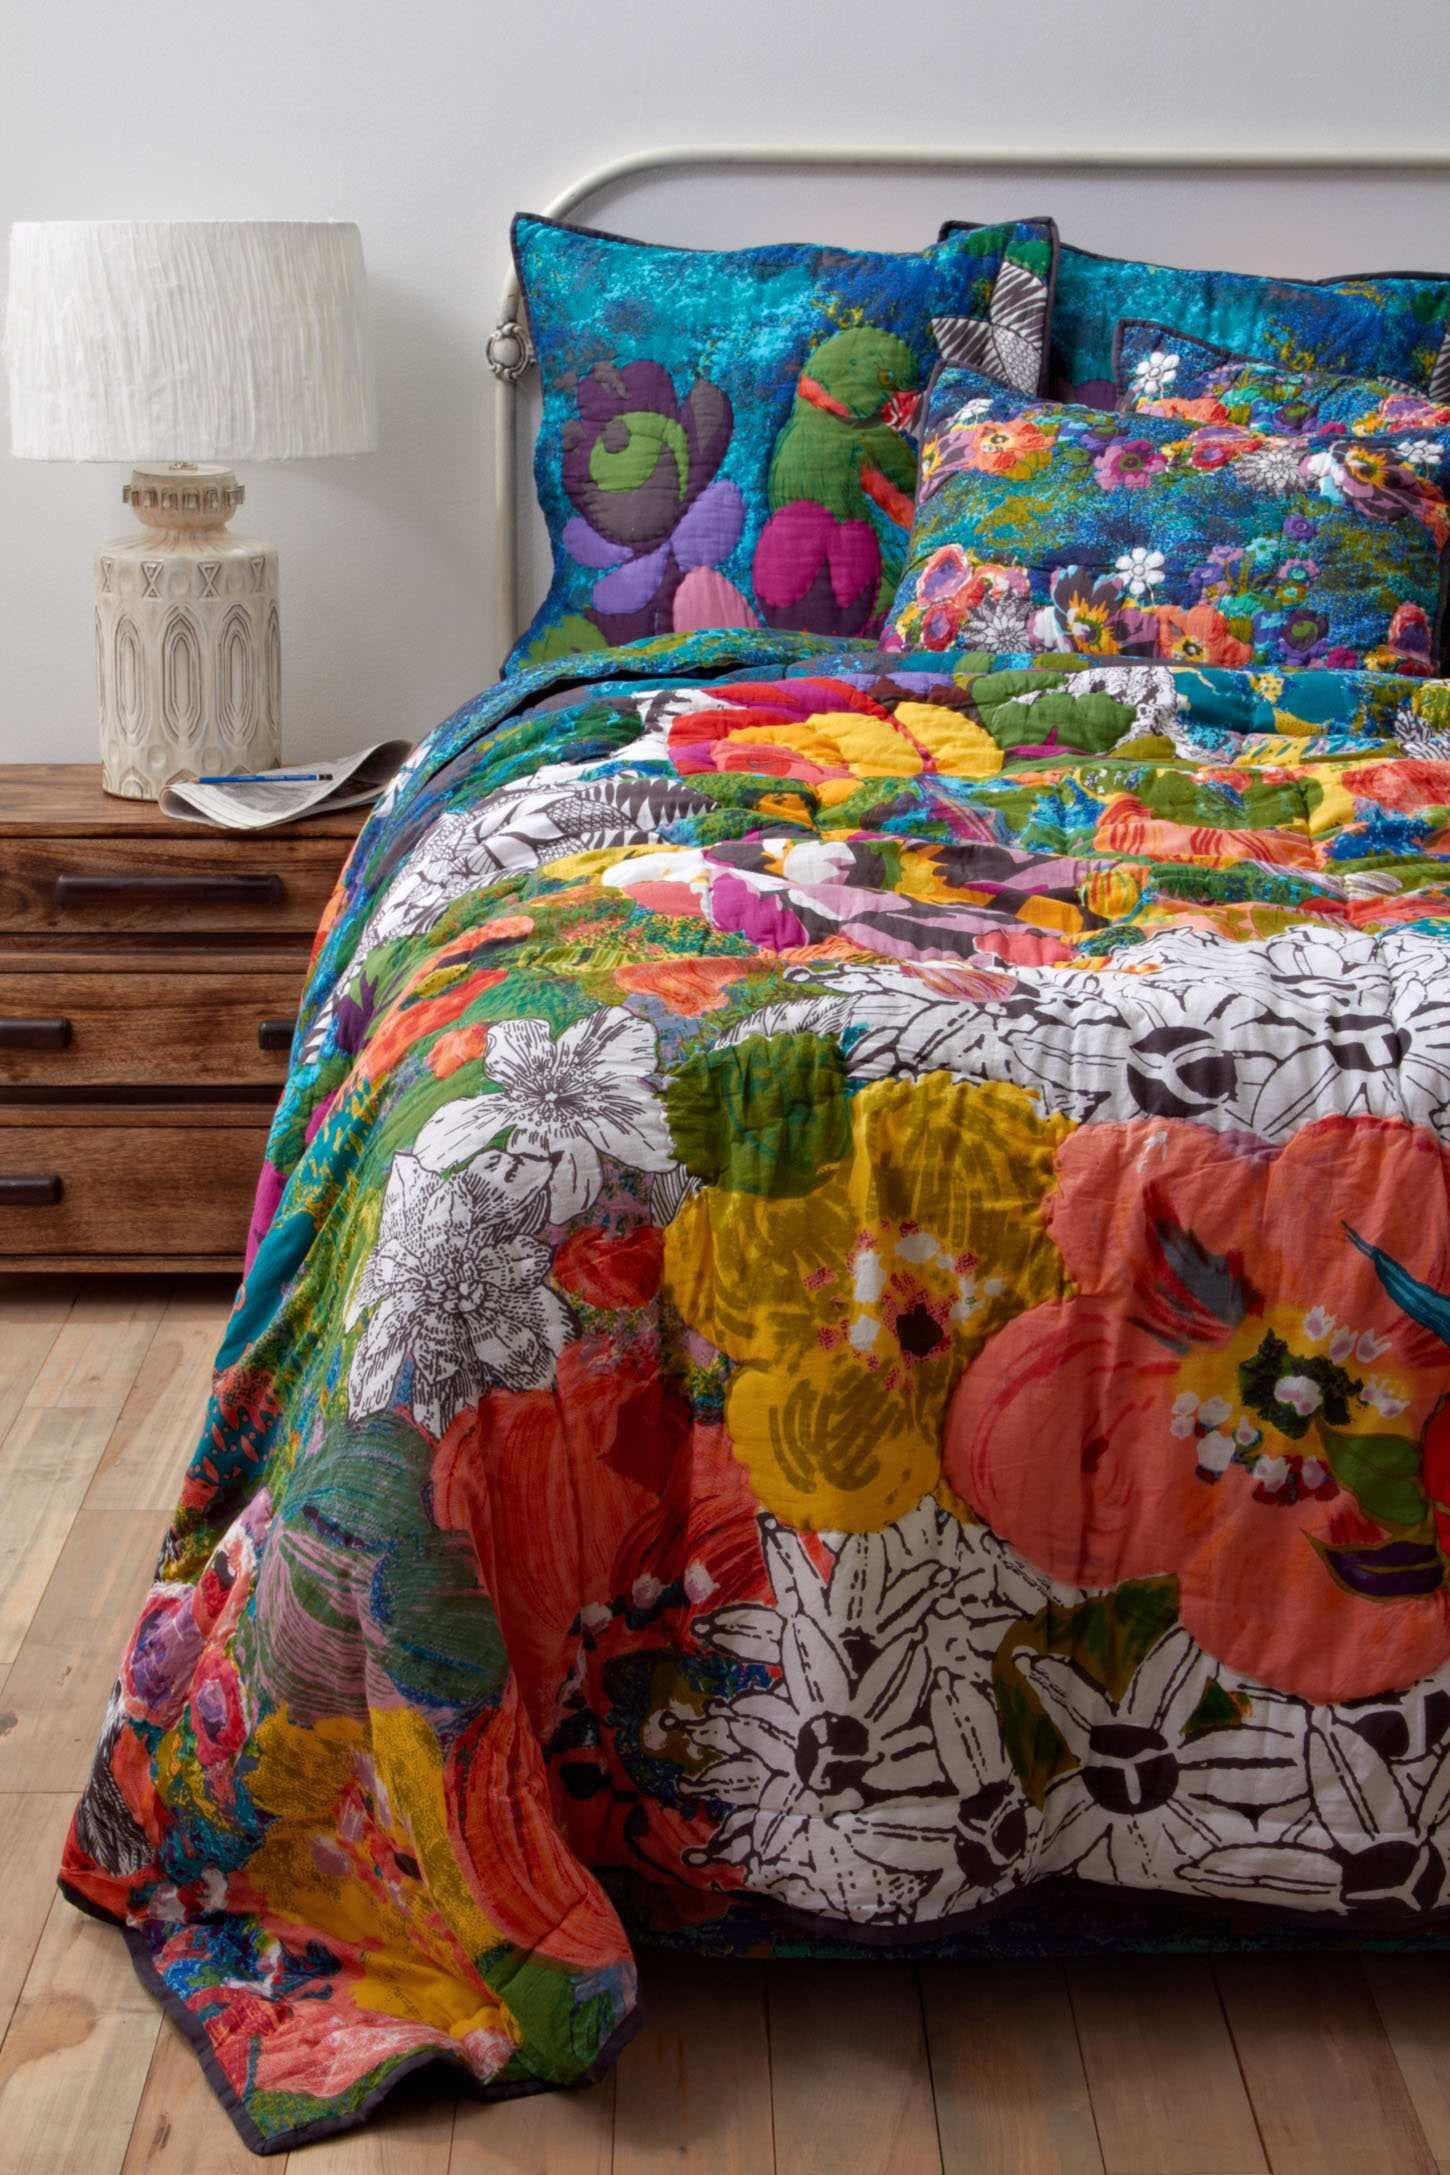 Bedding from anthropologie interiors pinterest for Home decorating like anthropologie